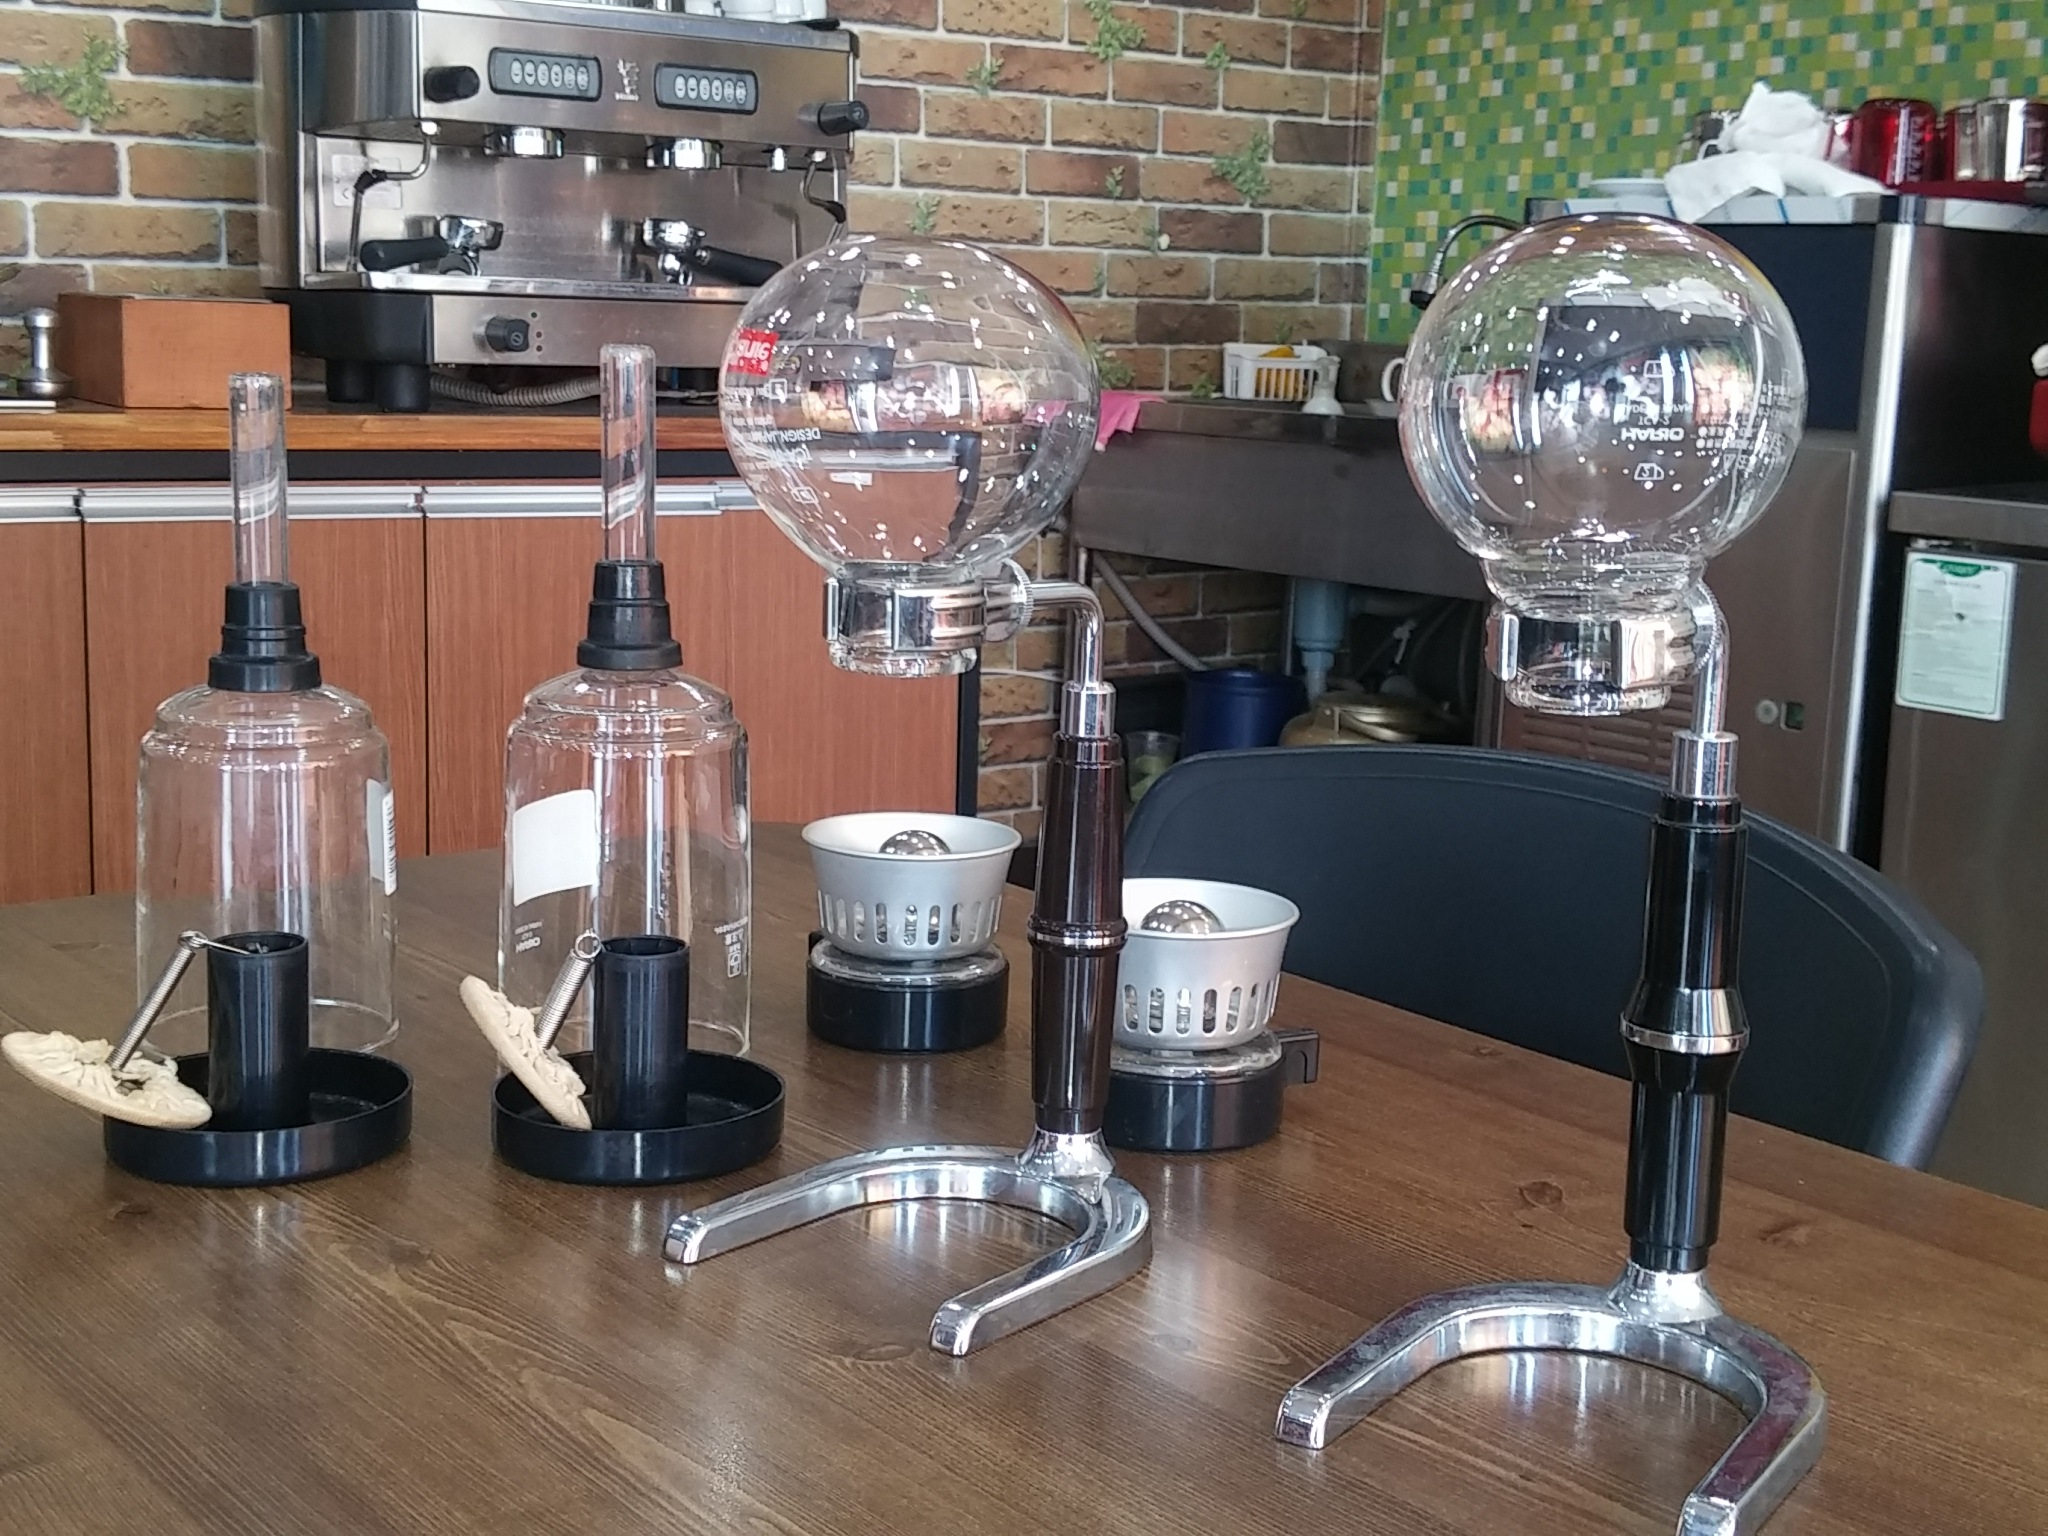 Siphon coffee by park seong hyeon